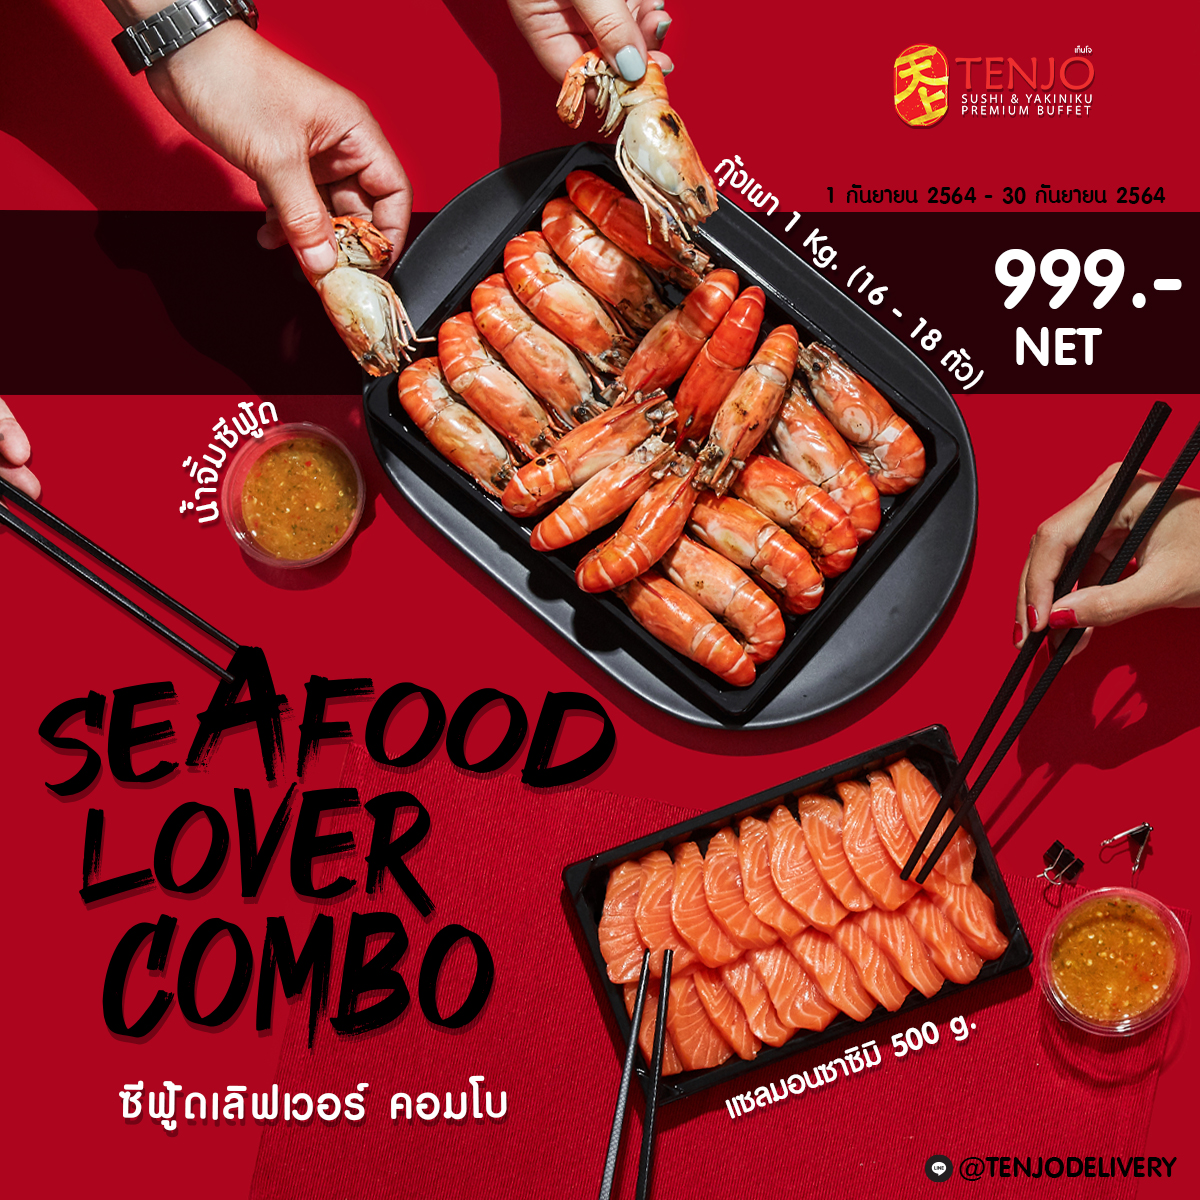 FB_Seafood lover combo